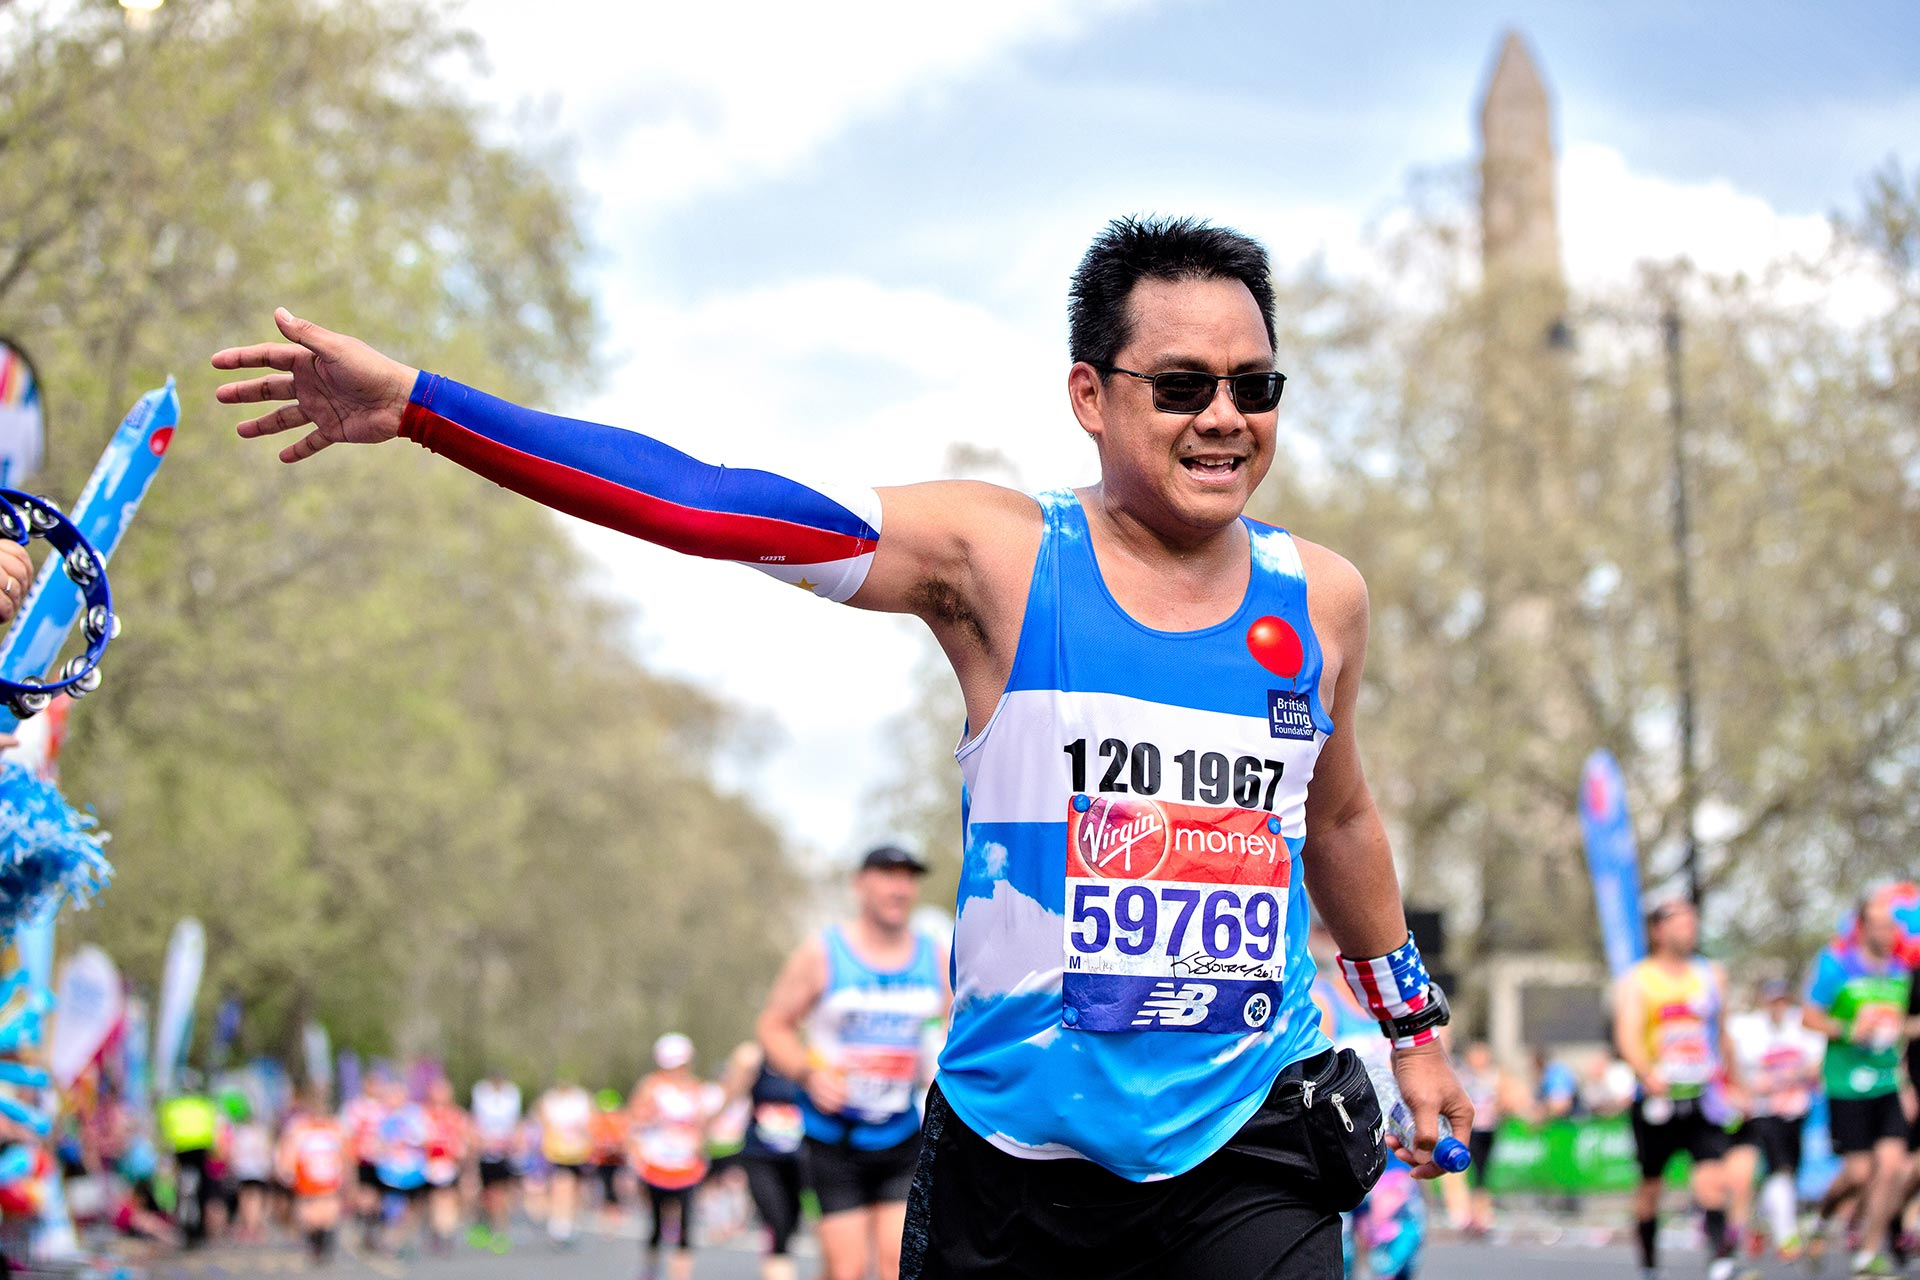 The-Virgin-London-Marathon-2018-with-British-Lung-Foundation-©-Brendan-Foster-Photography-396-Edit-85.jpg